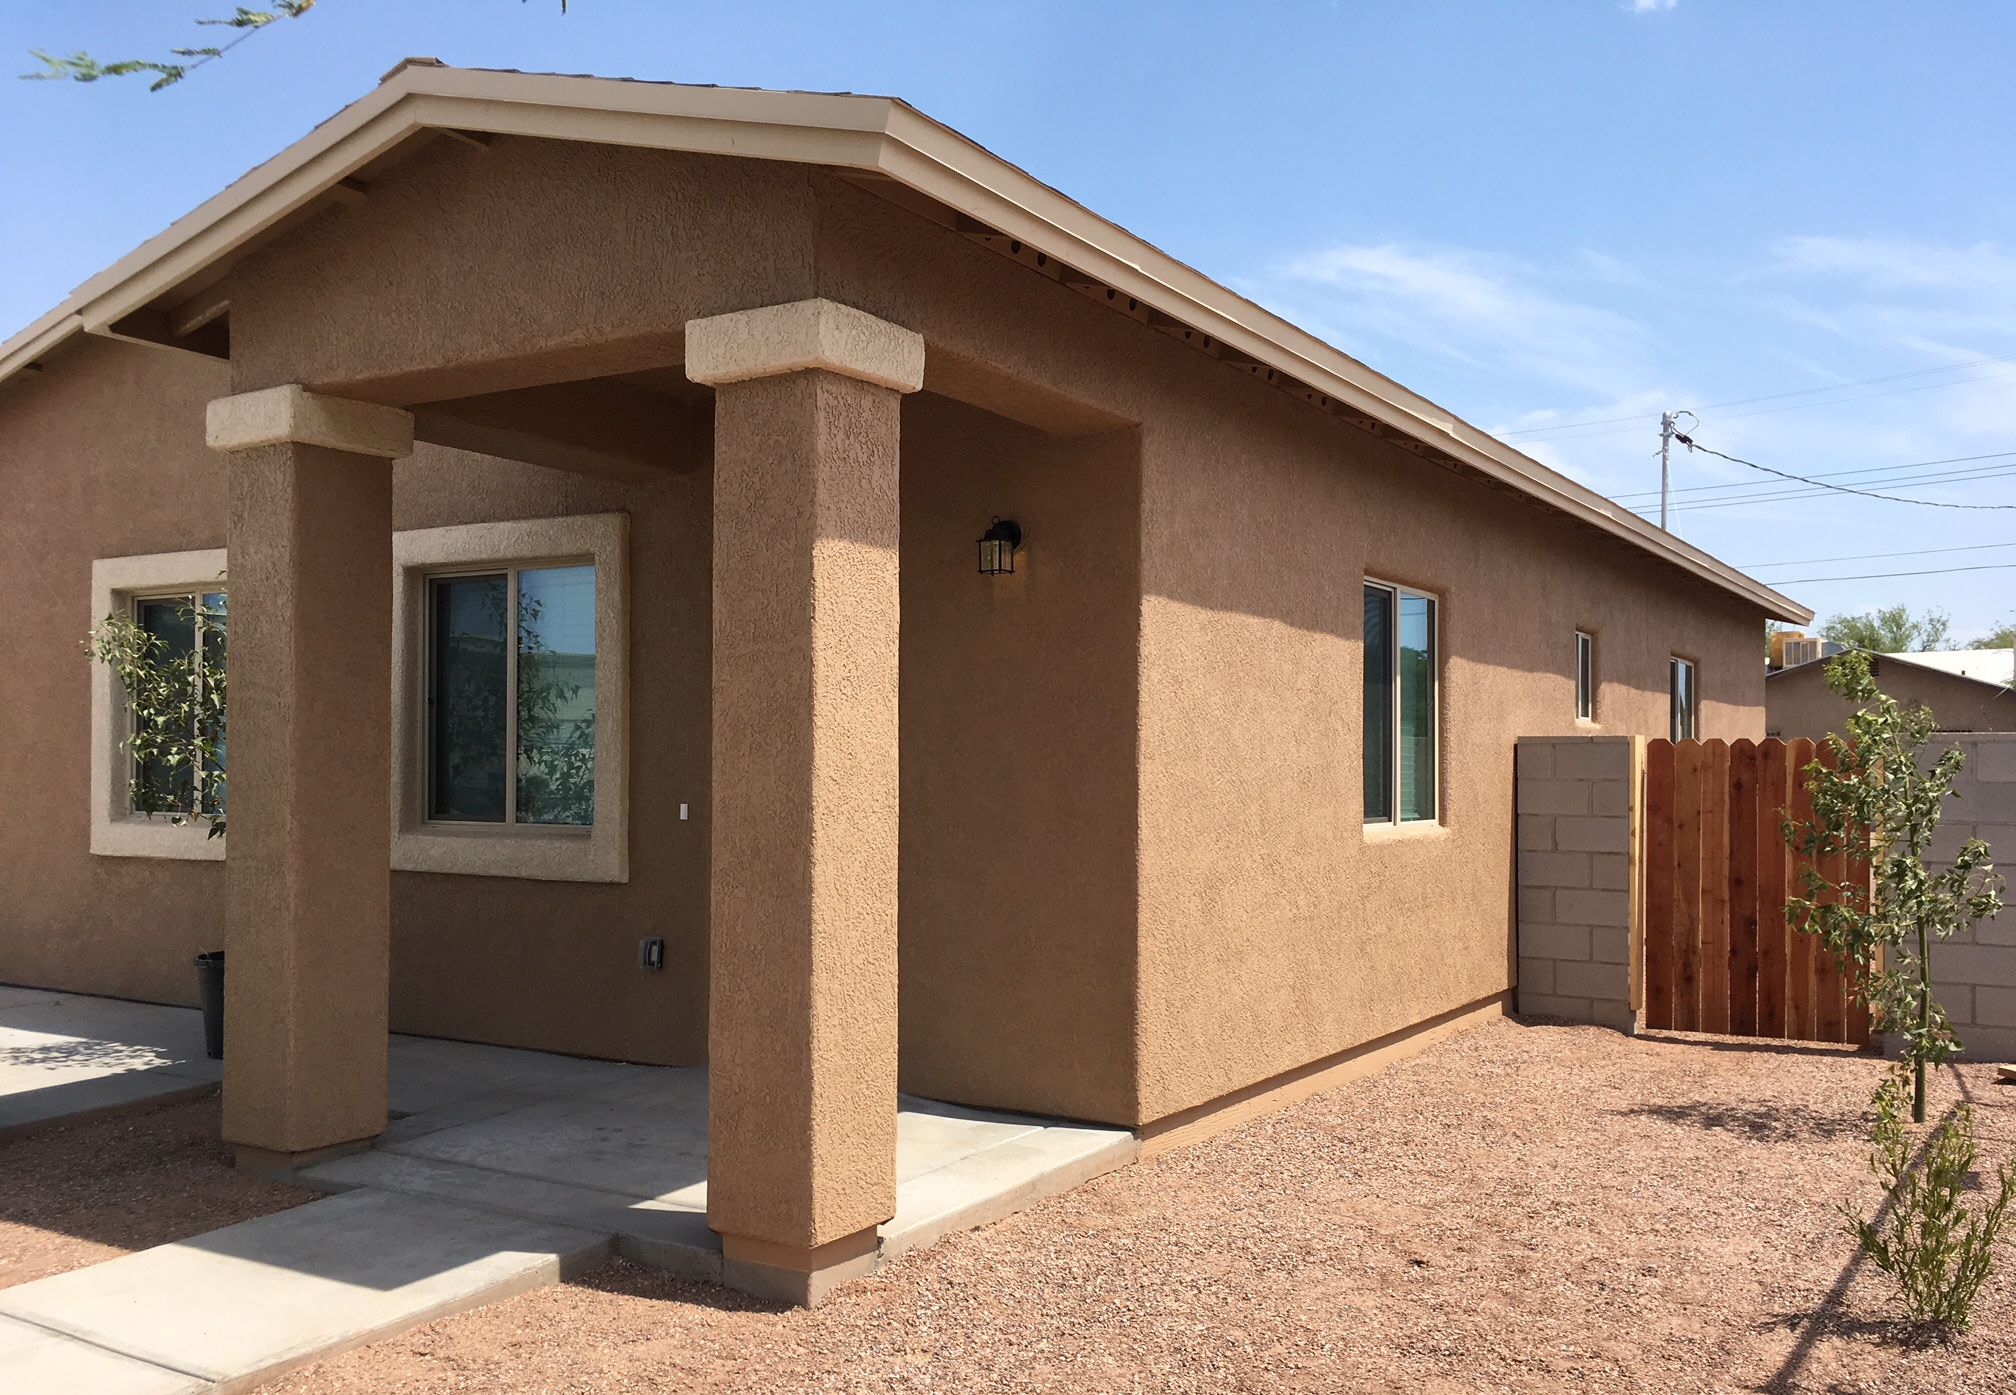 Arizona Daily Star: Primavera Completes First of Four Homes in Revitalization Project in South Tucson